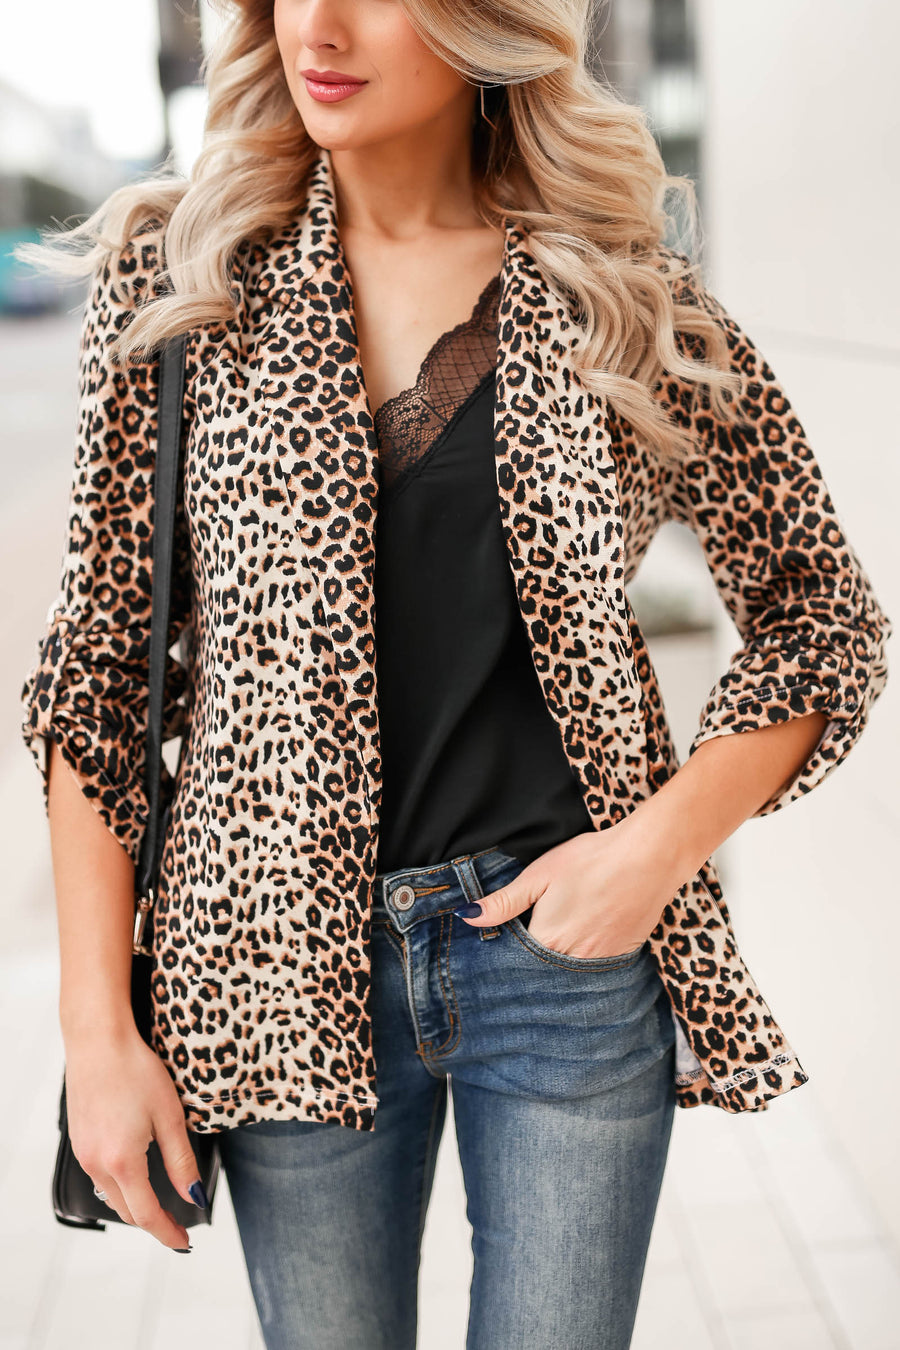 Boys Club Blazer - Leopard closet candy womens office chic animal print open front jacket 1